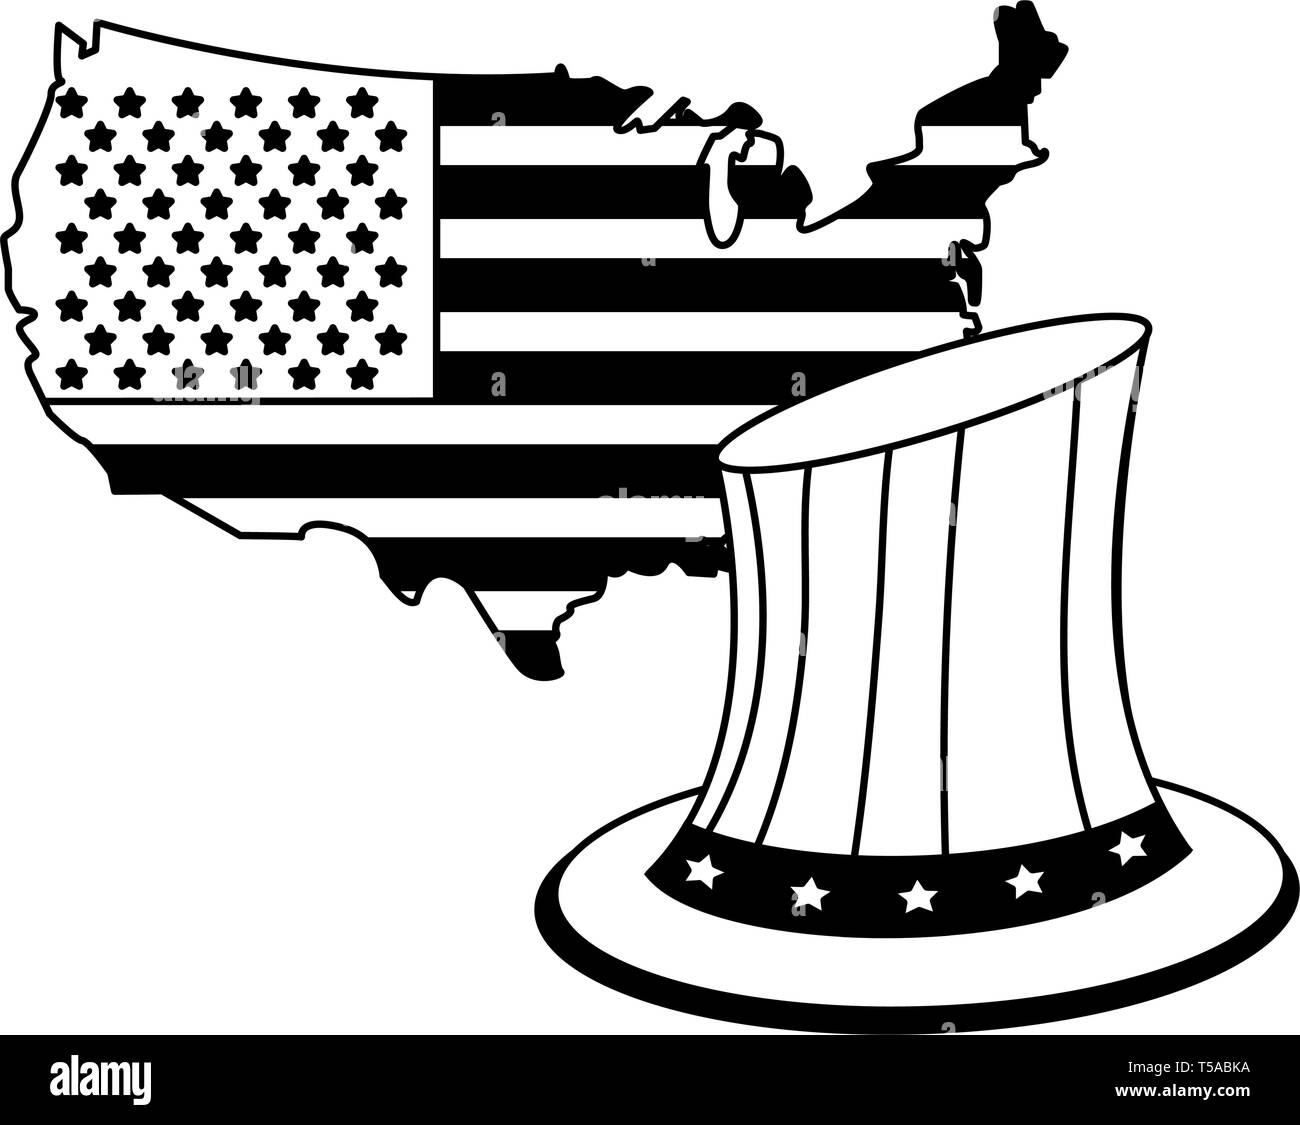 United States Map Outline with hat patriotic in black and white - Stock Image